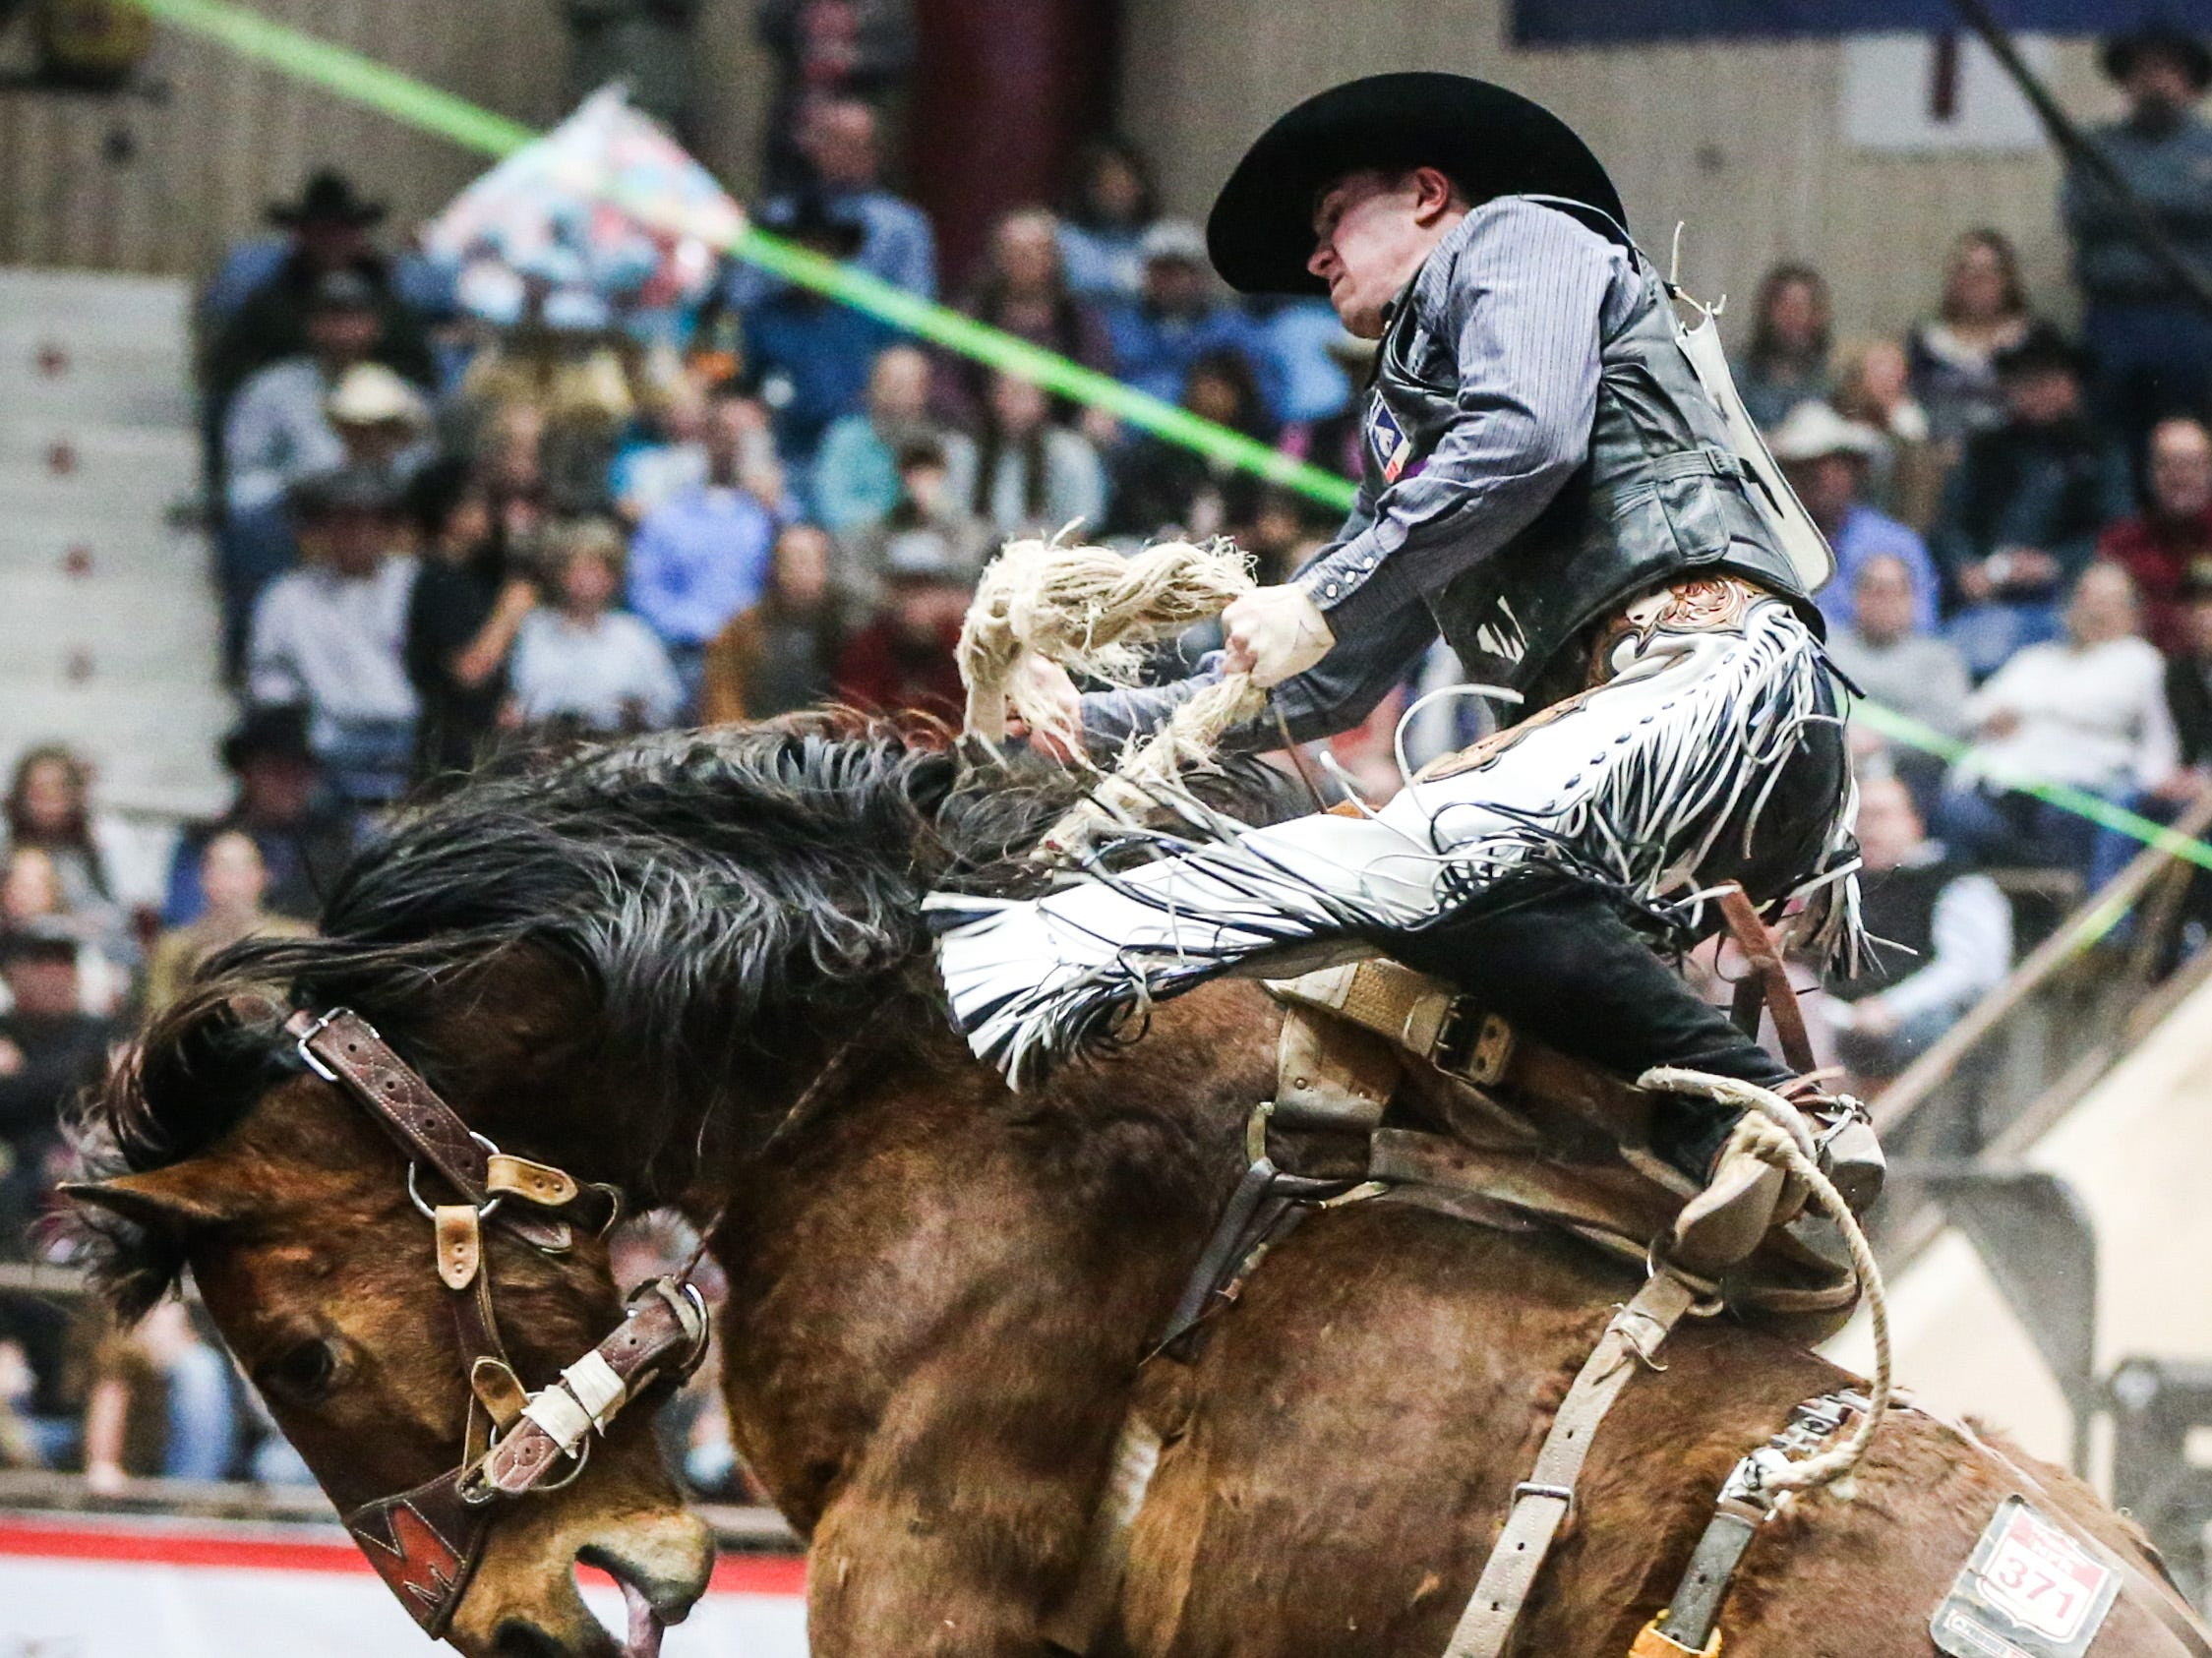 Chase Brooks rides Get Smart during Cinch Chute Out Saturday, Feb. 16, 2019, at Foster Communications Coliseum.